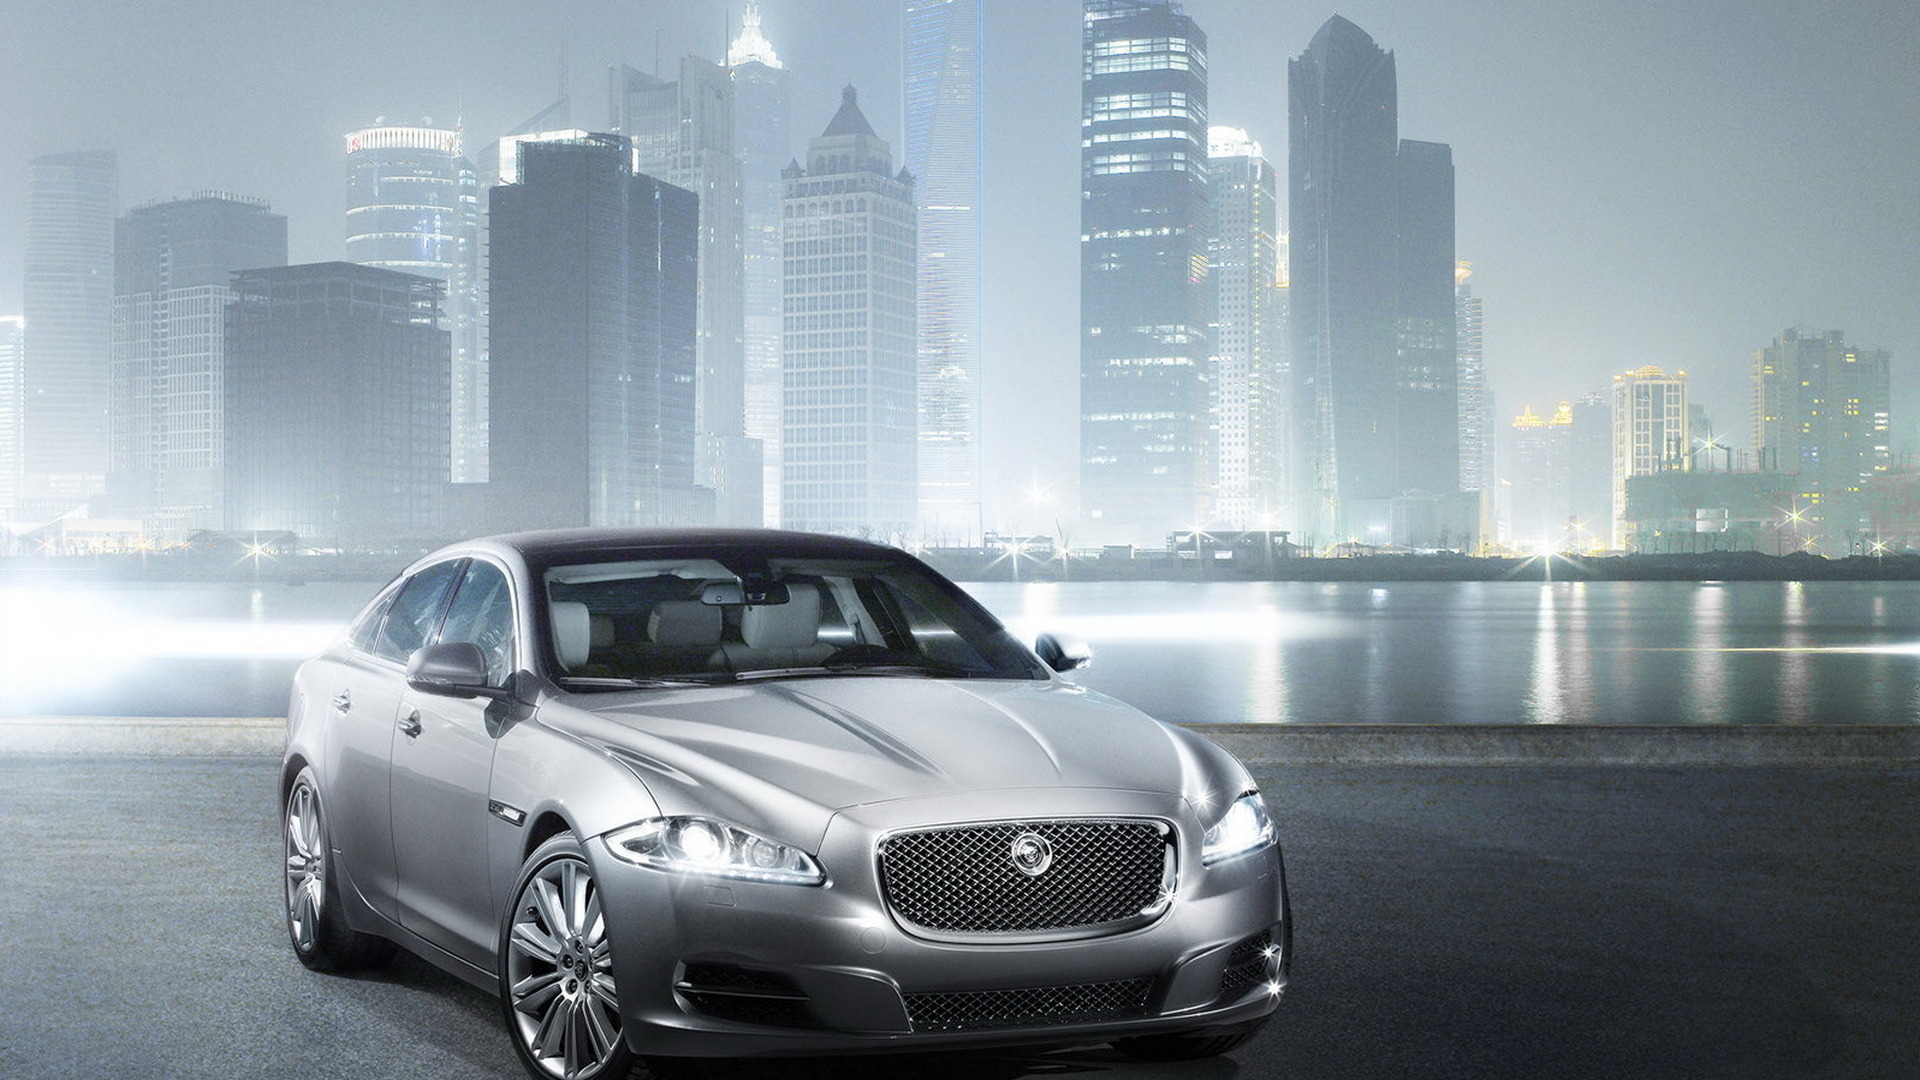 Jaguar Xj Car Hd Images